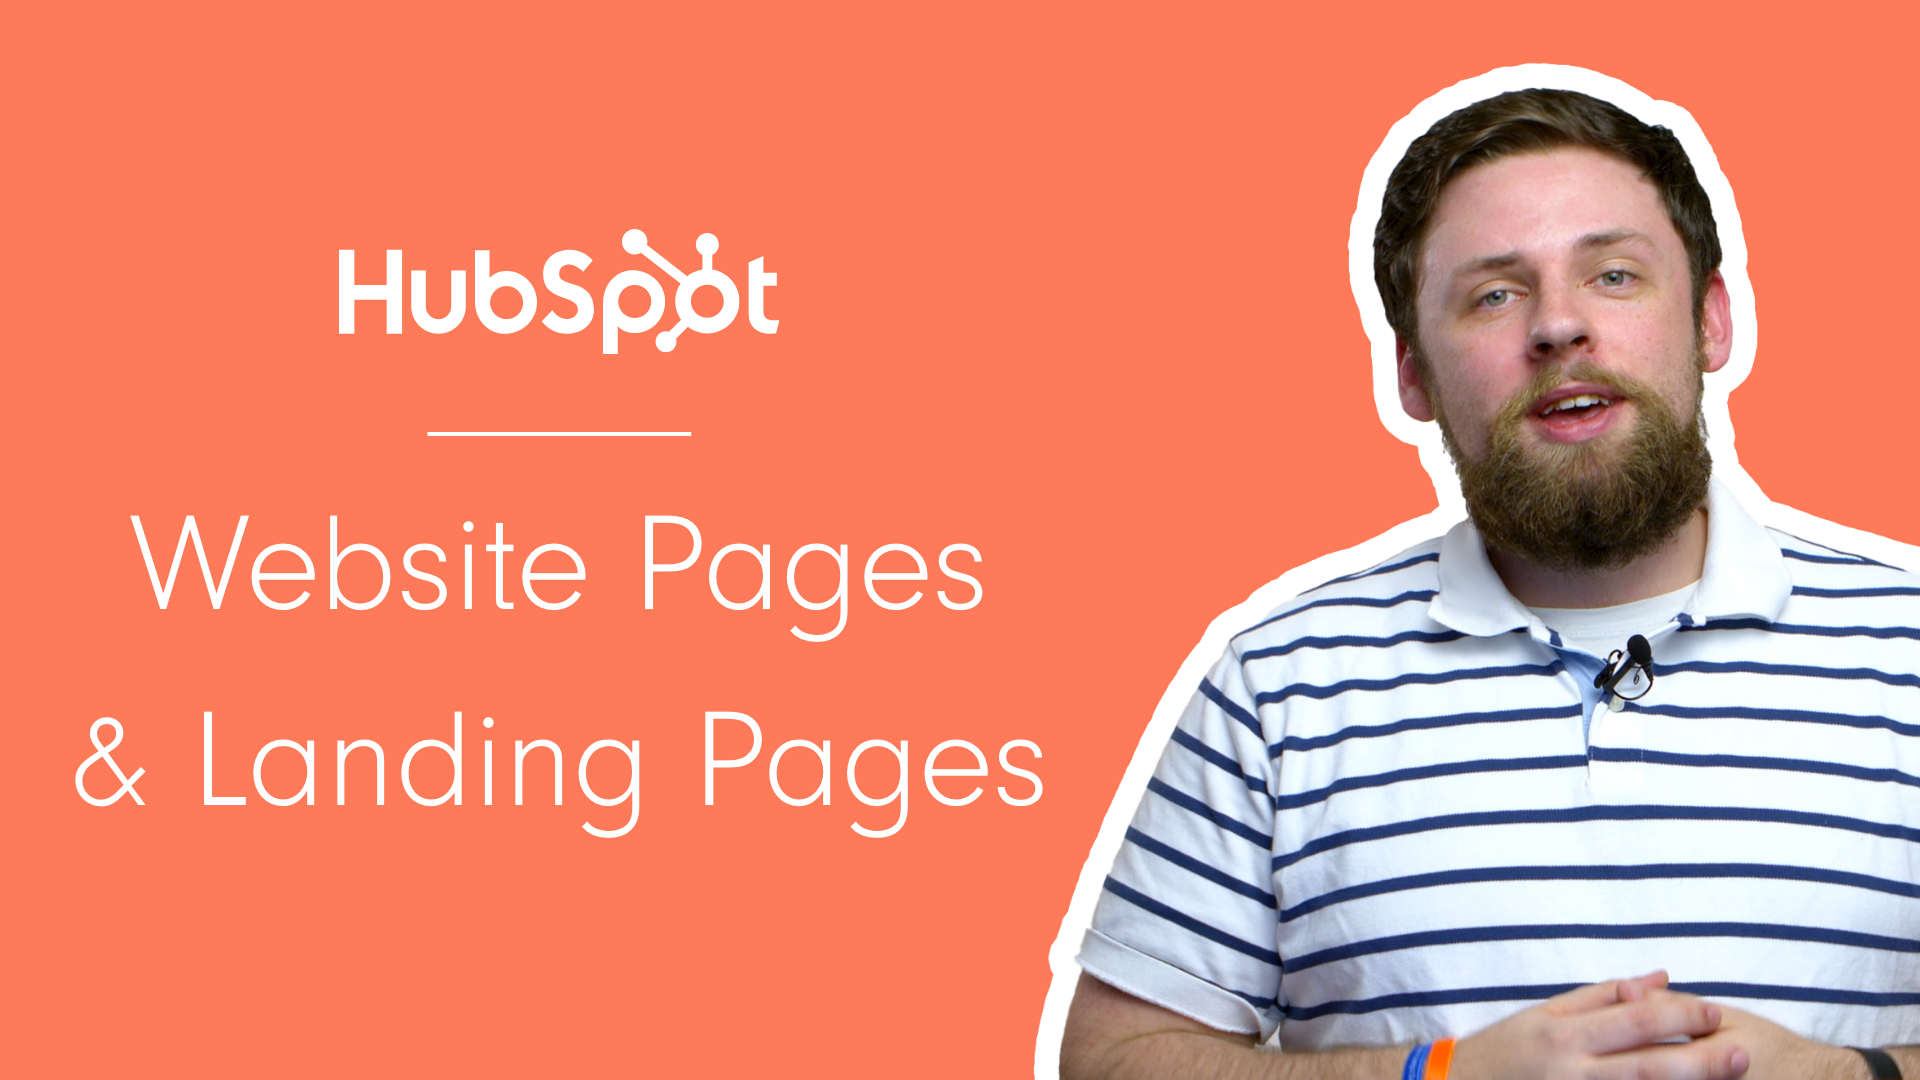 How To Build HubSpot Landing and Website Pages